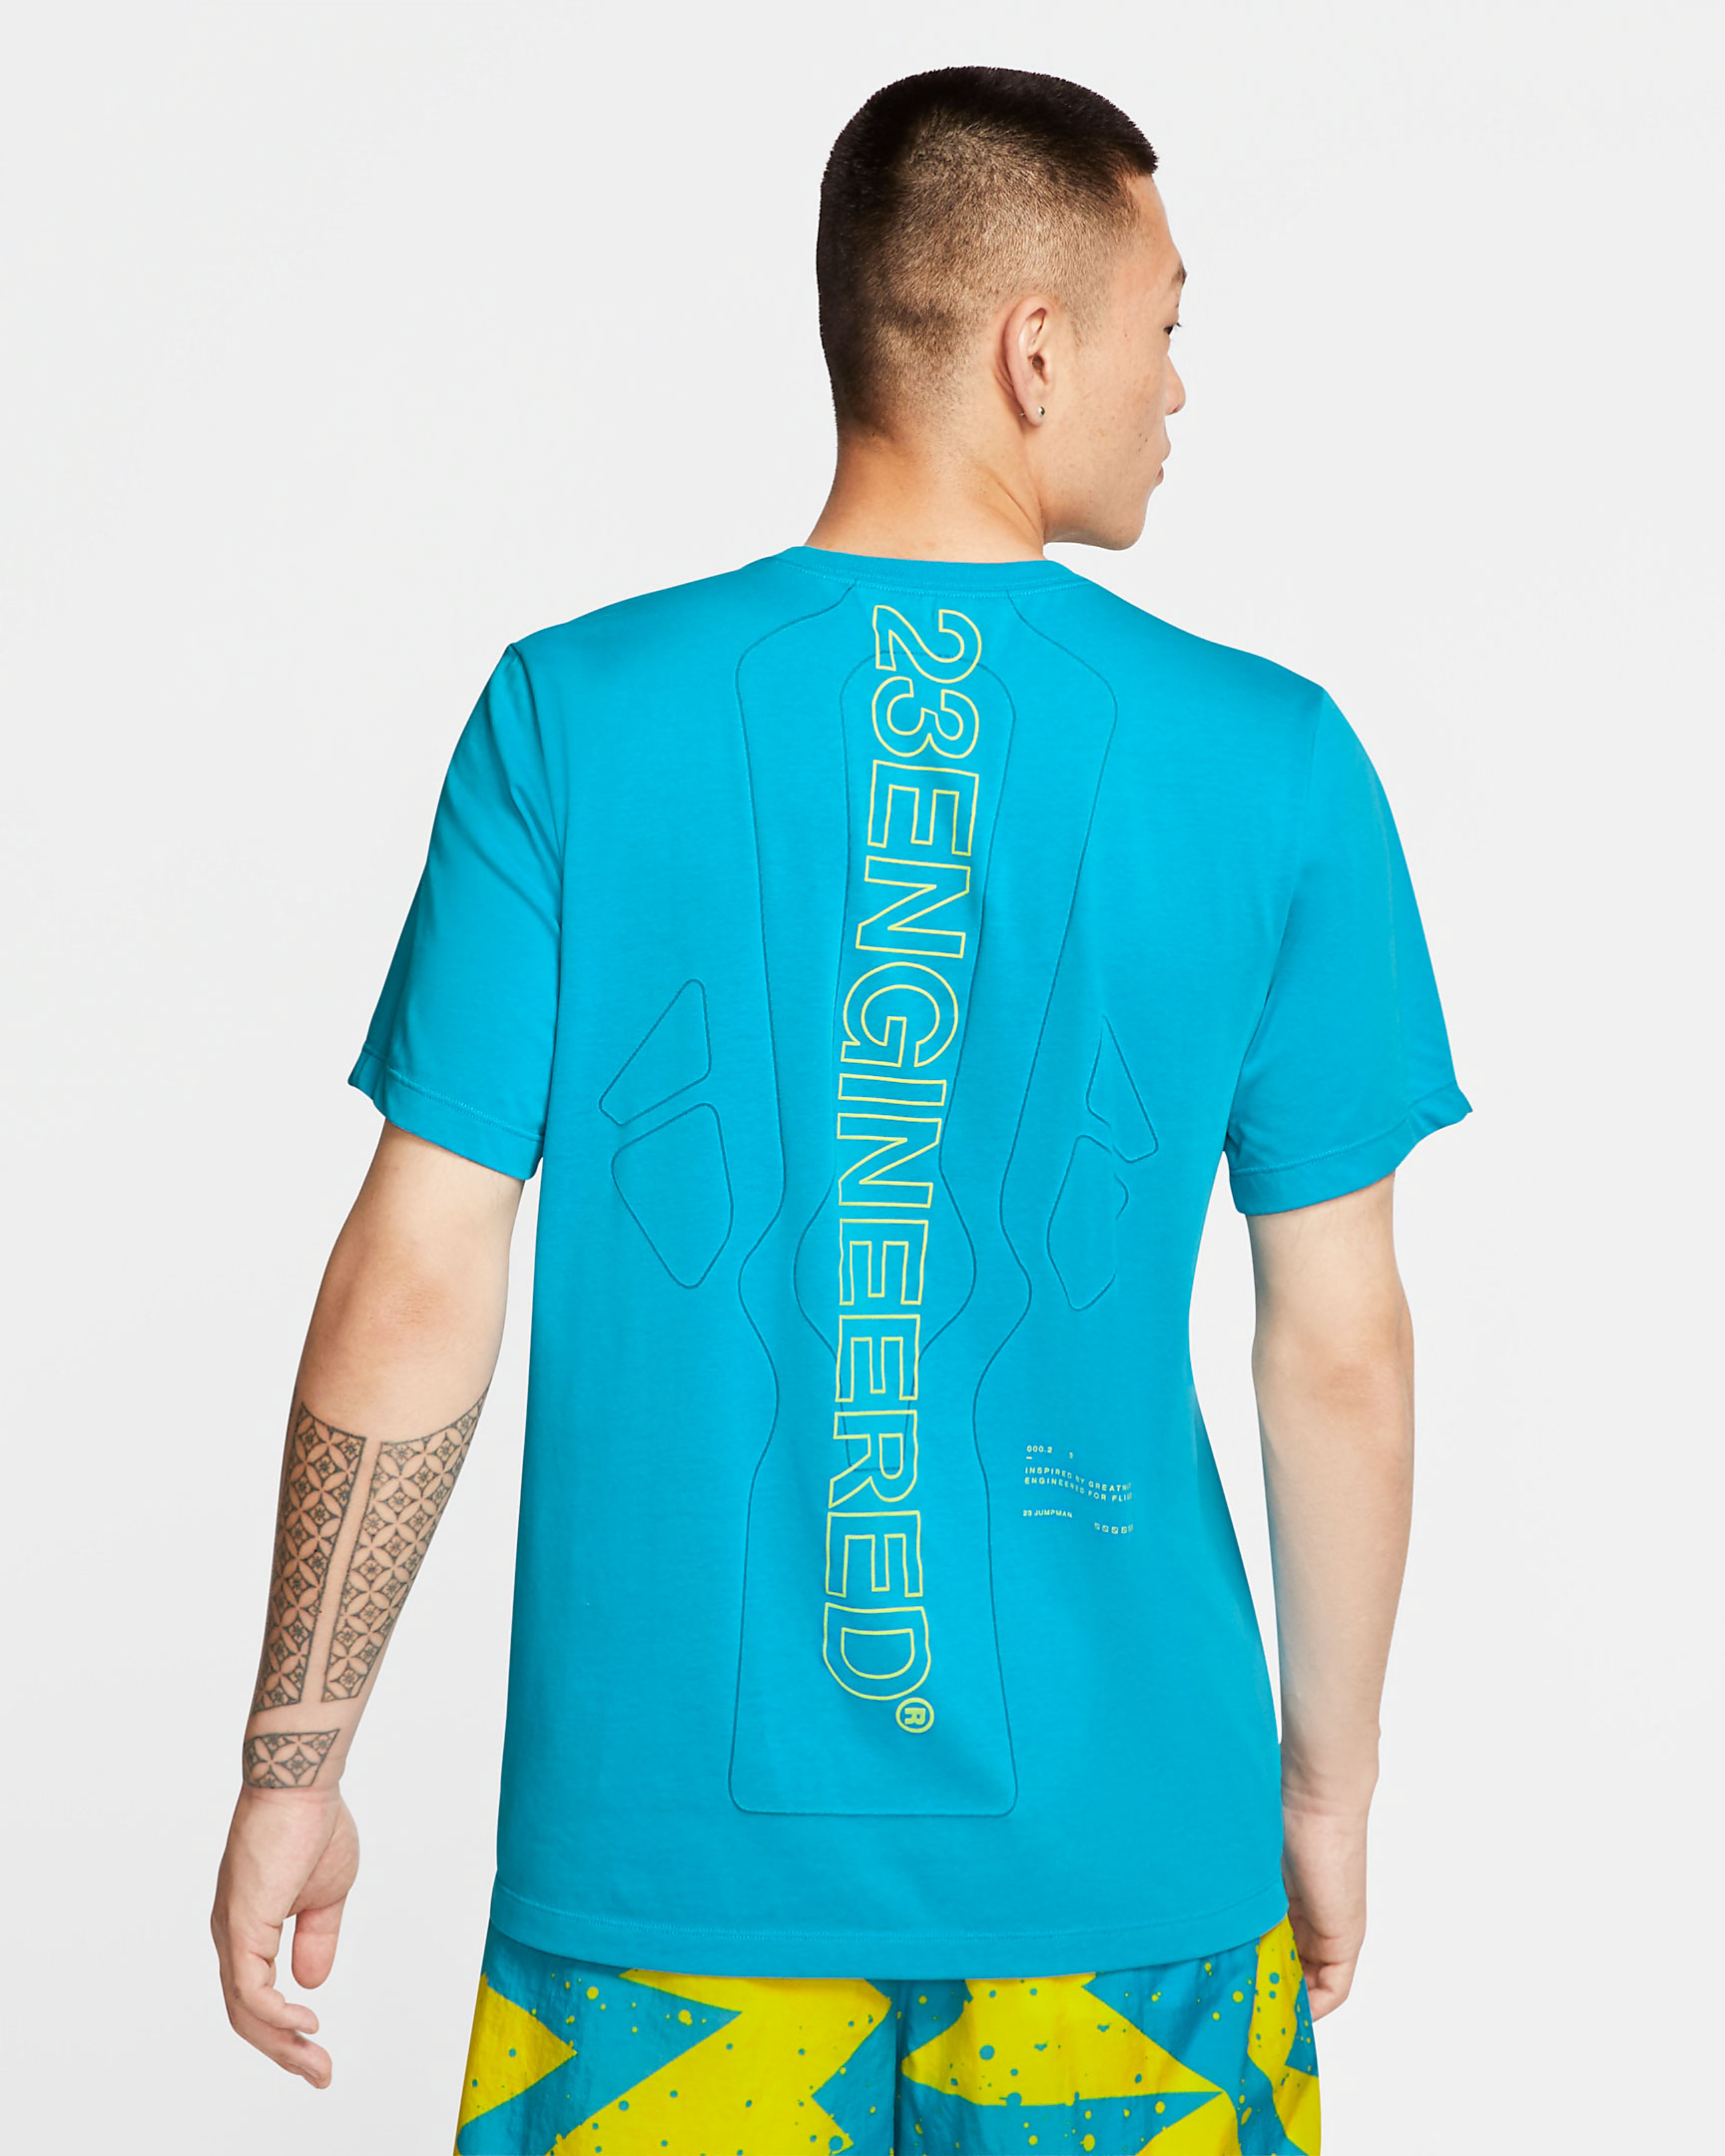 jordan-23-engineered-shirt-blue-green-2